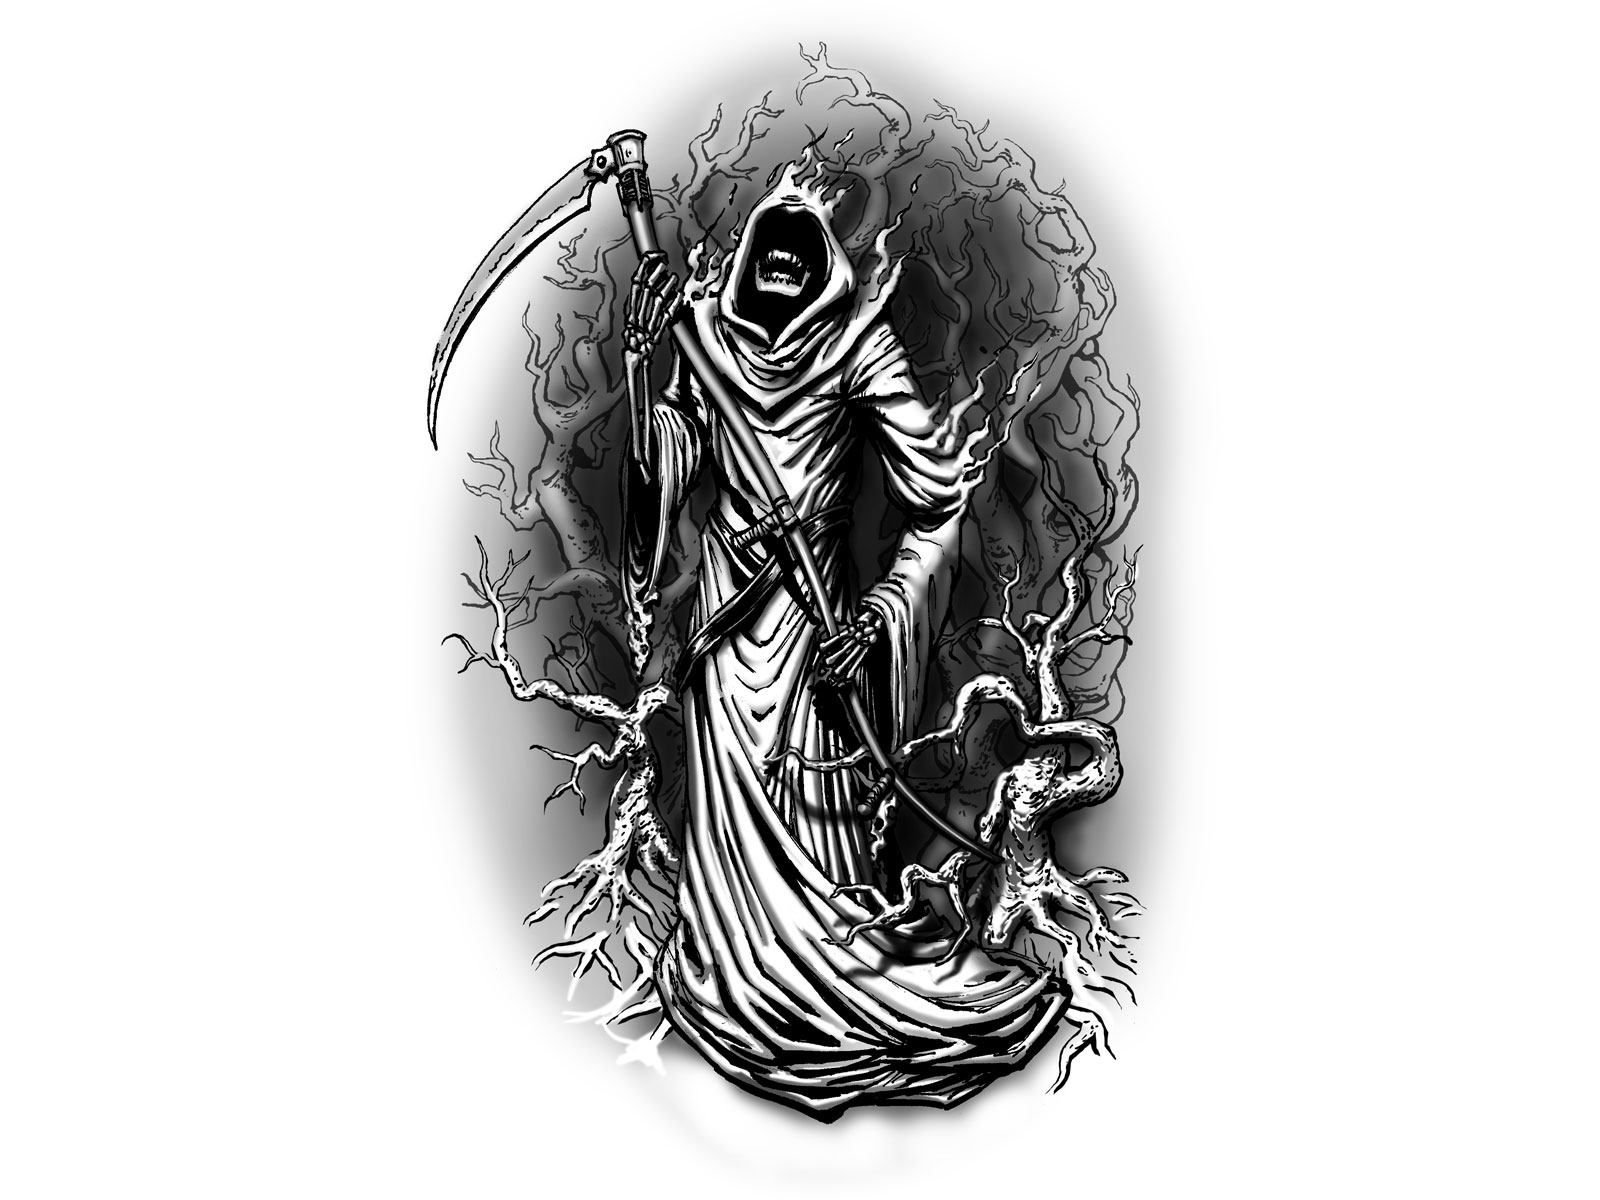 Grim Reaper In The Wood Looks Scary Tattoo Design